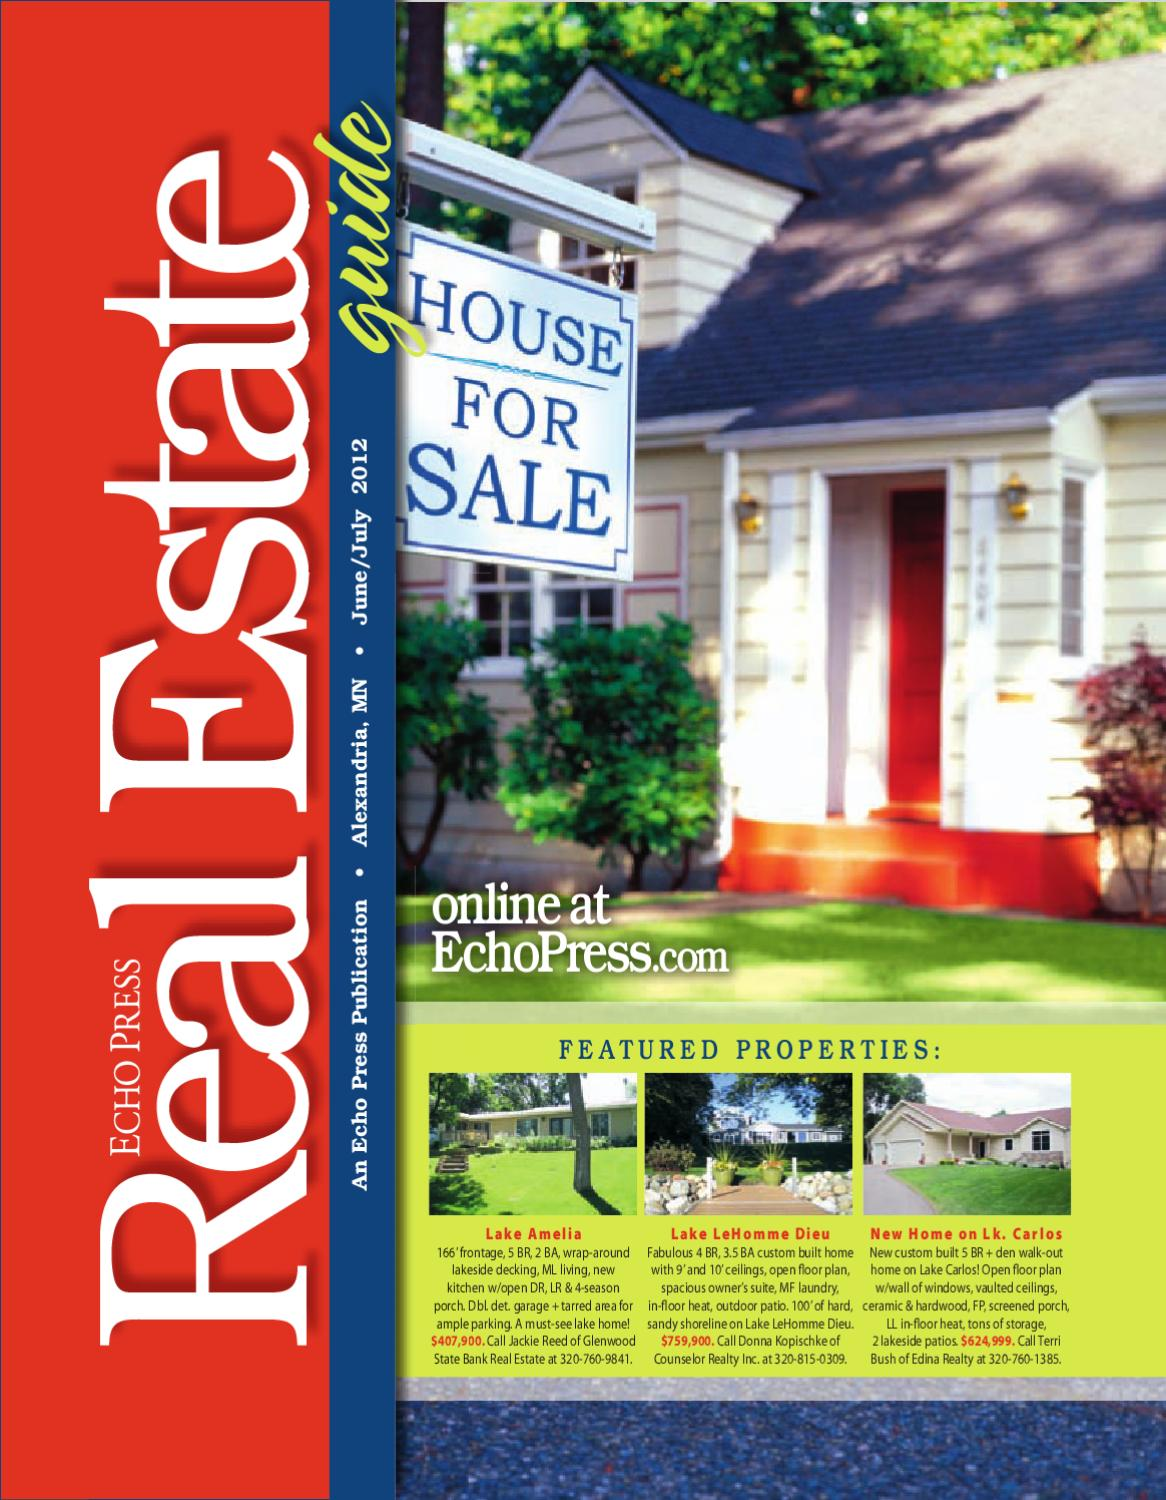 Real Estate Guide - June / July 2012 by Echo Press - issuu